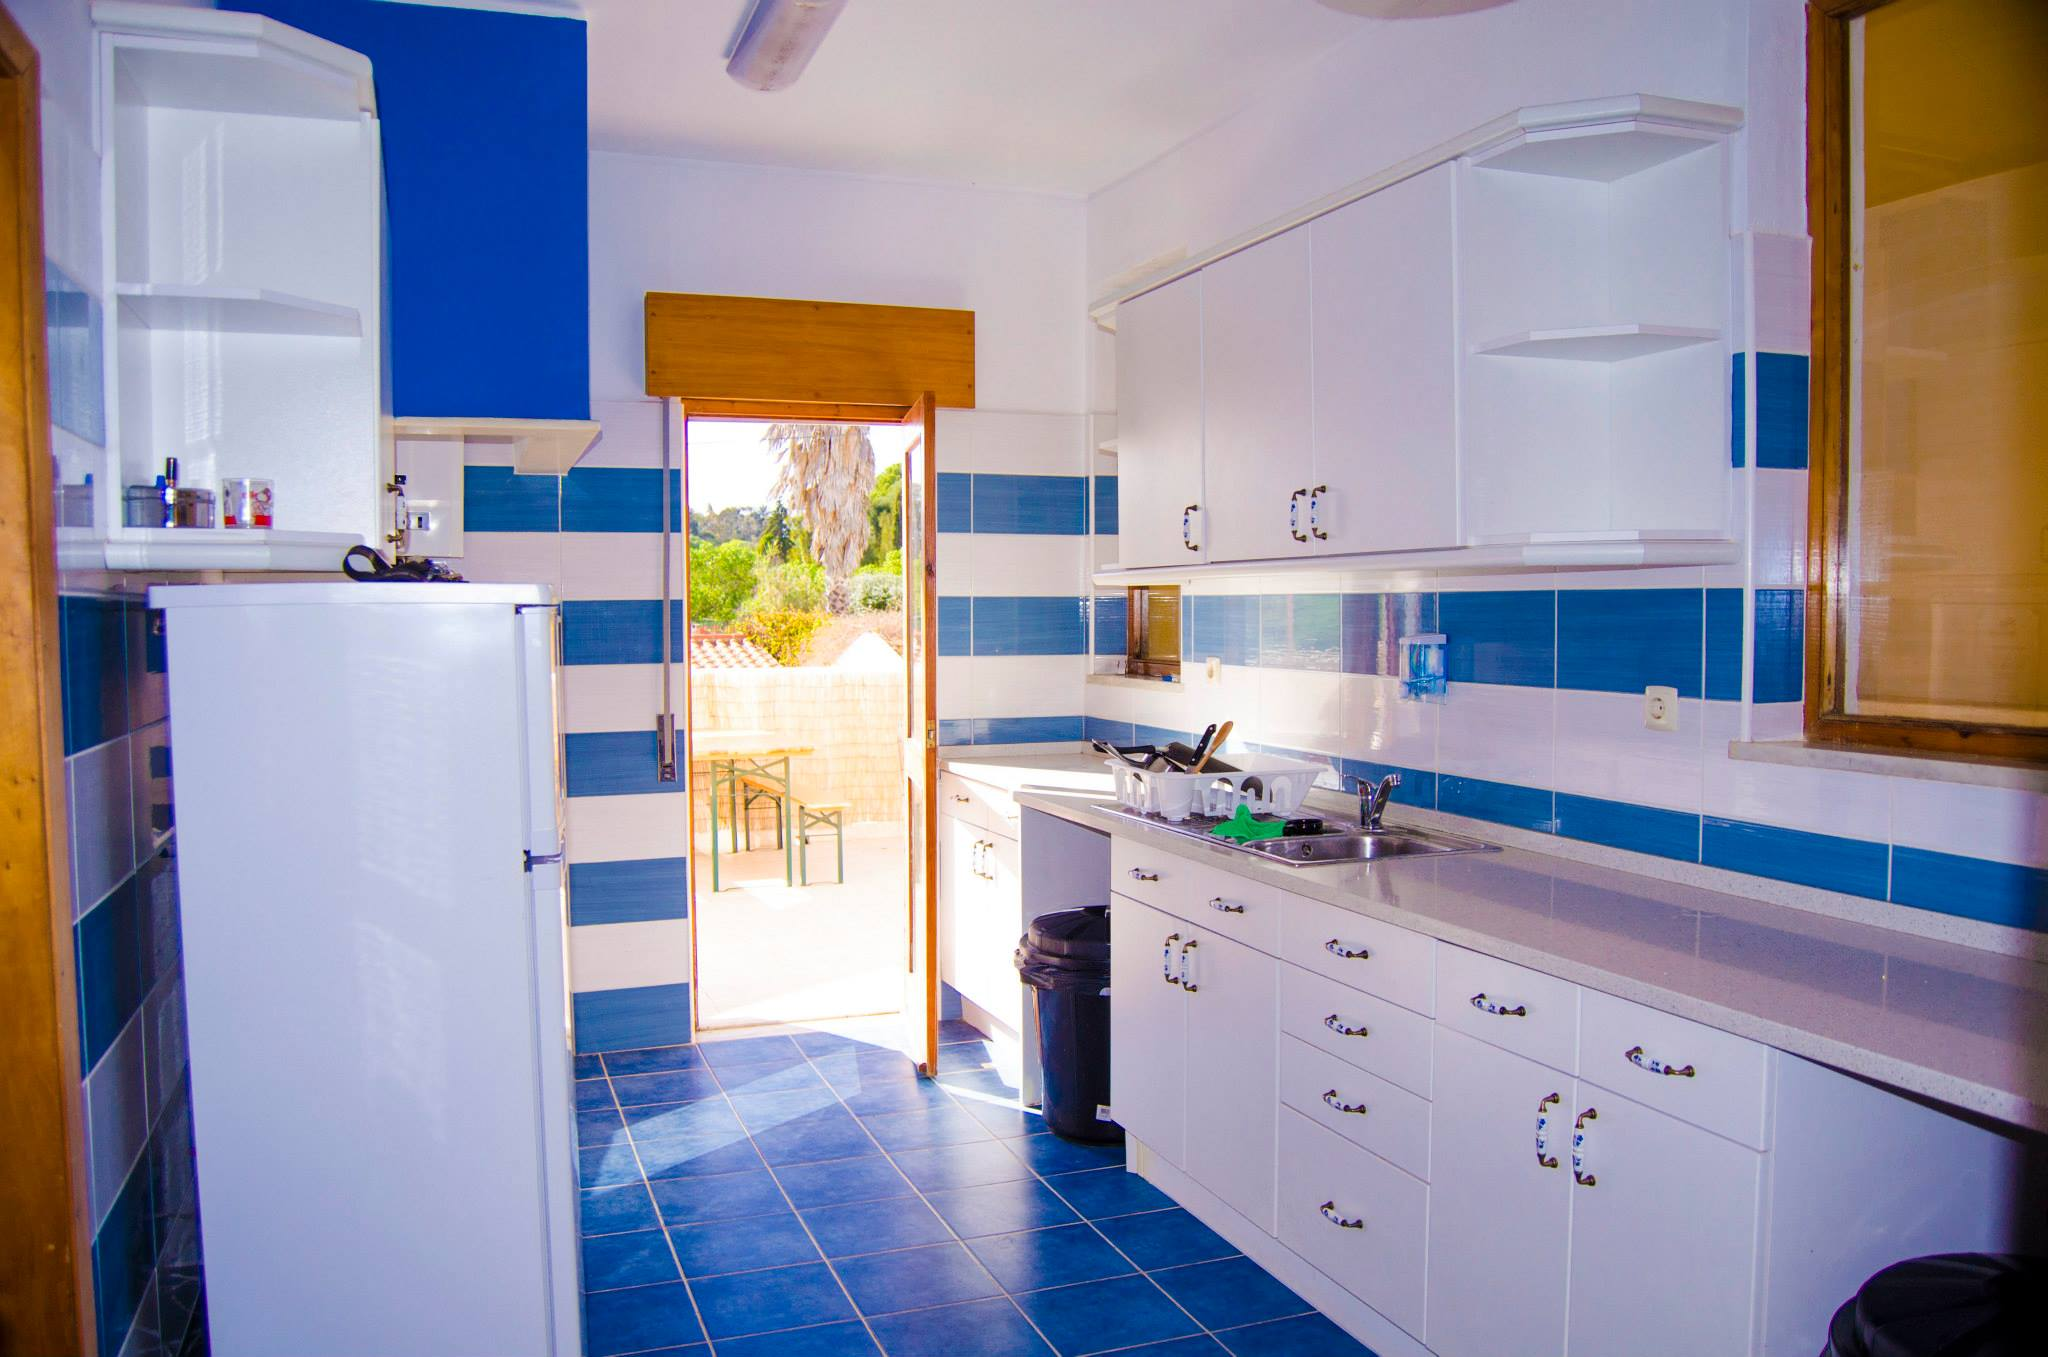 Kitchen in the Big Chill Hostel in Lagos in the Algarve, Portugal